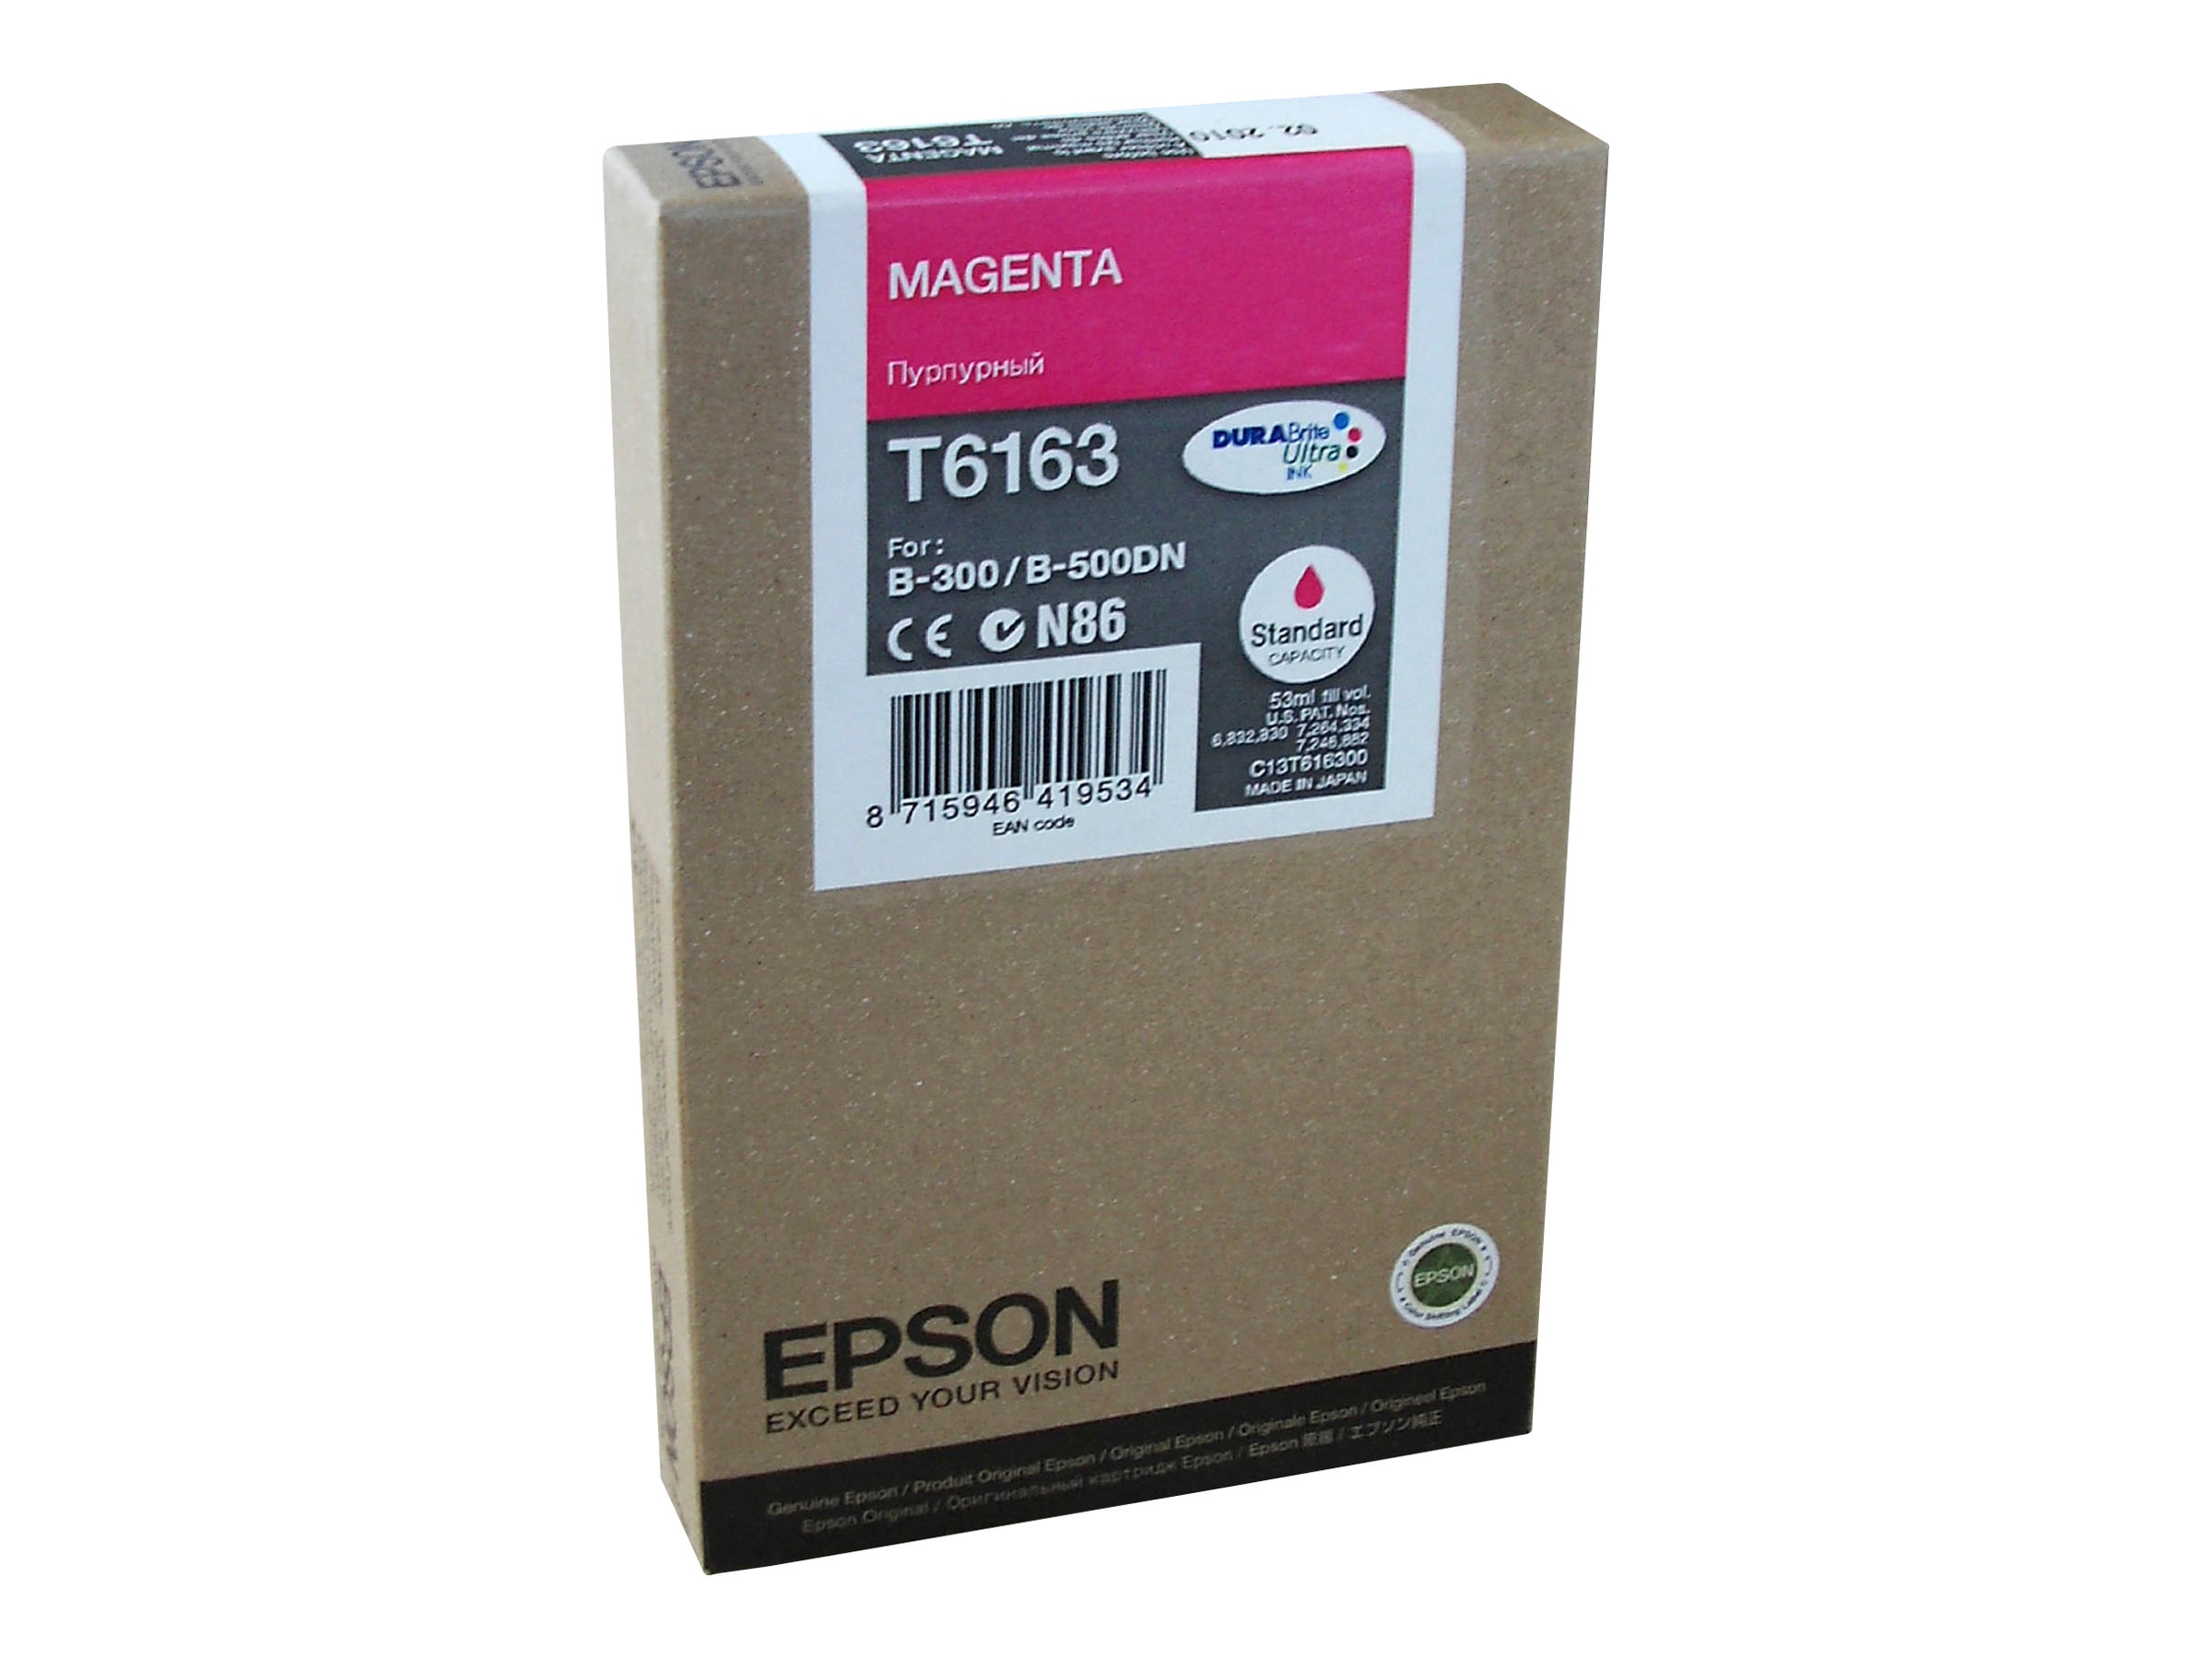 Epson Magenta Ink Cartridge for B-300 & B-500DN Business Color Ink Jet Printer